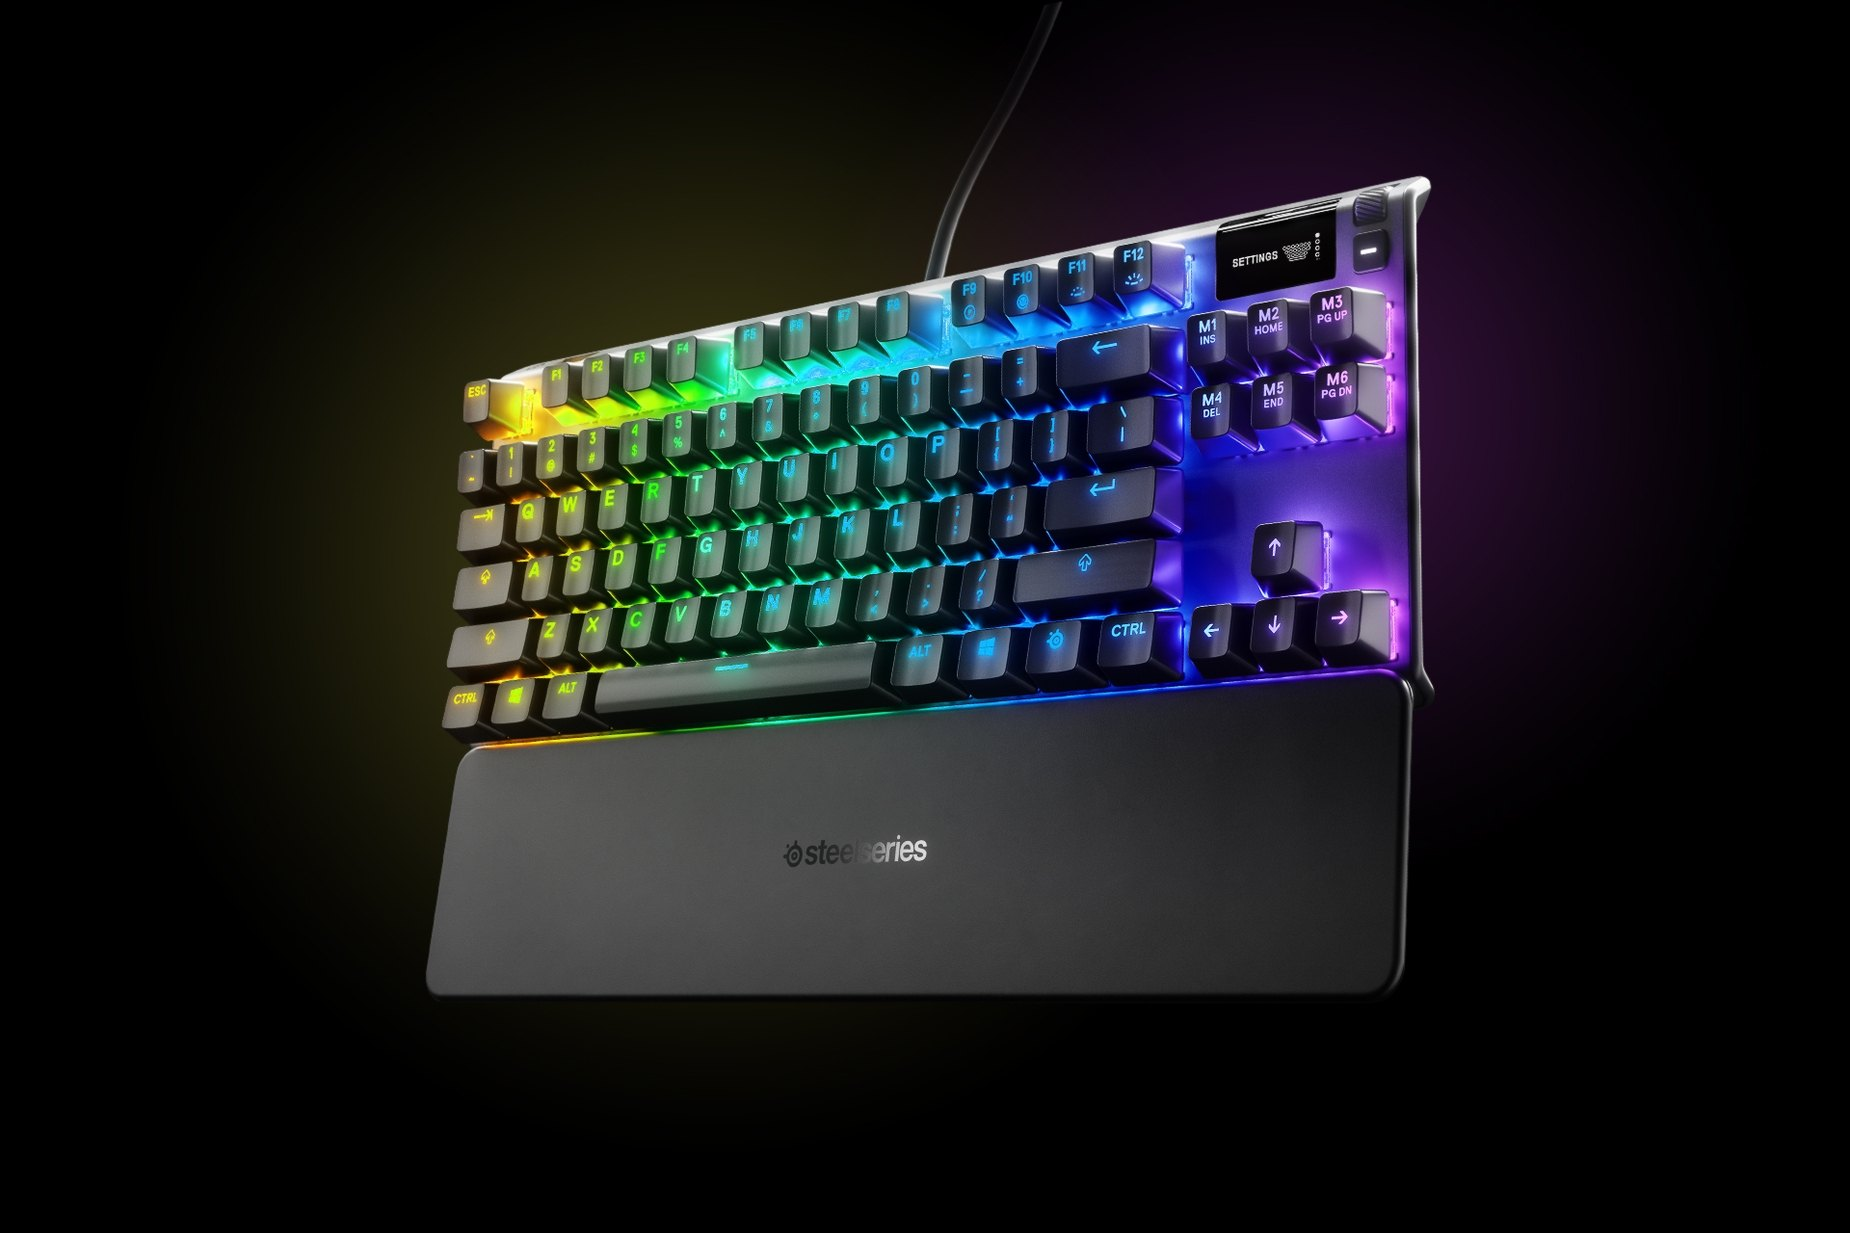 UK İngilizce - Apex 7 TKL (Blue Switch) gaming keyboard with the illumination lit up on dark background, also shows the OLED screen and controls used to change settings and adjust audio